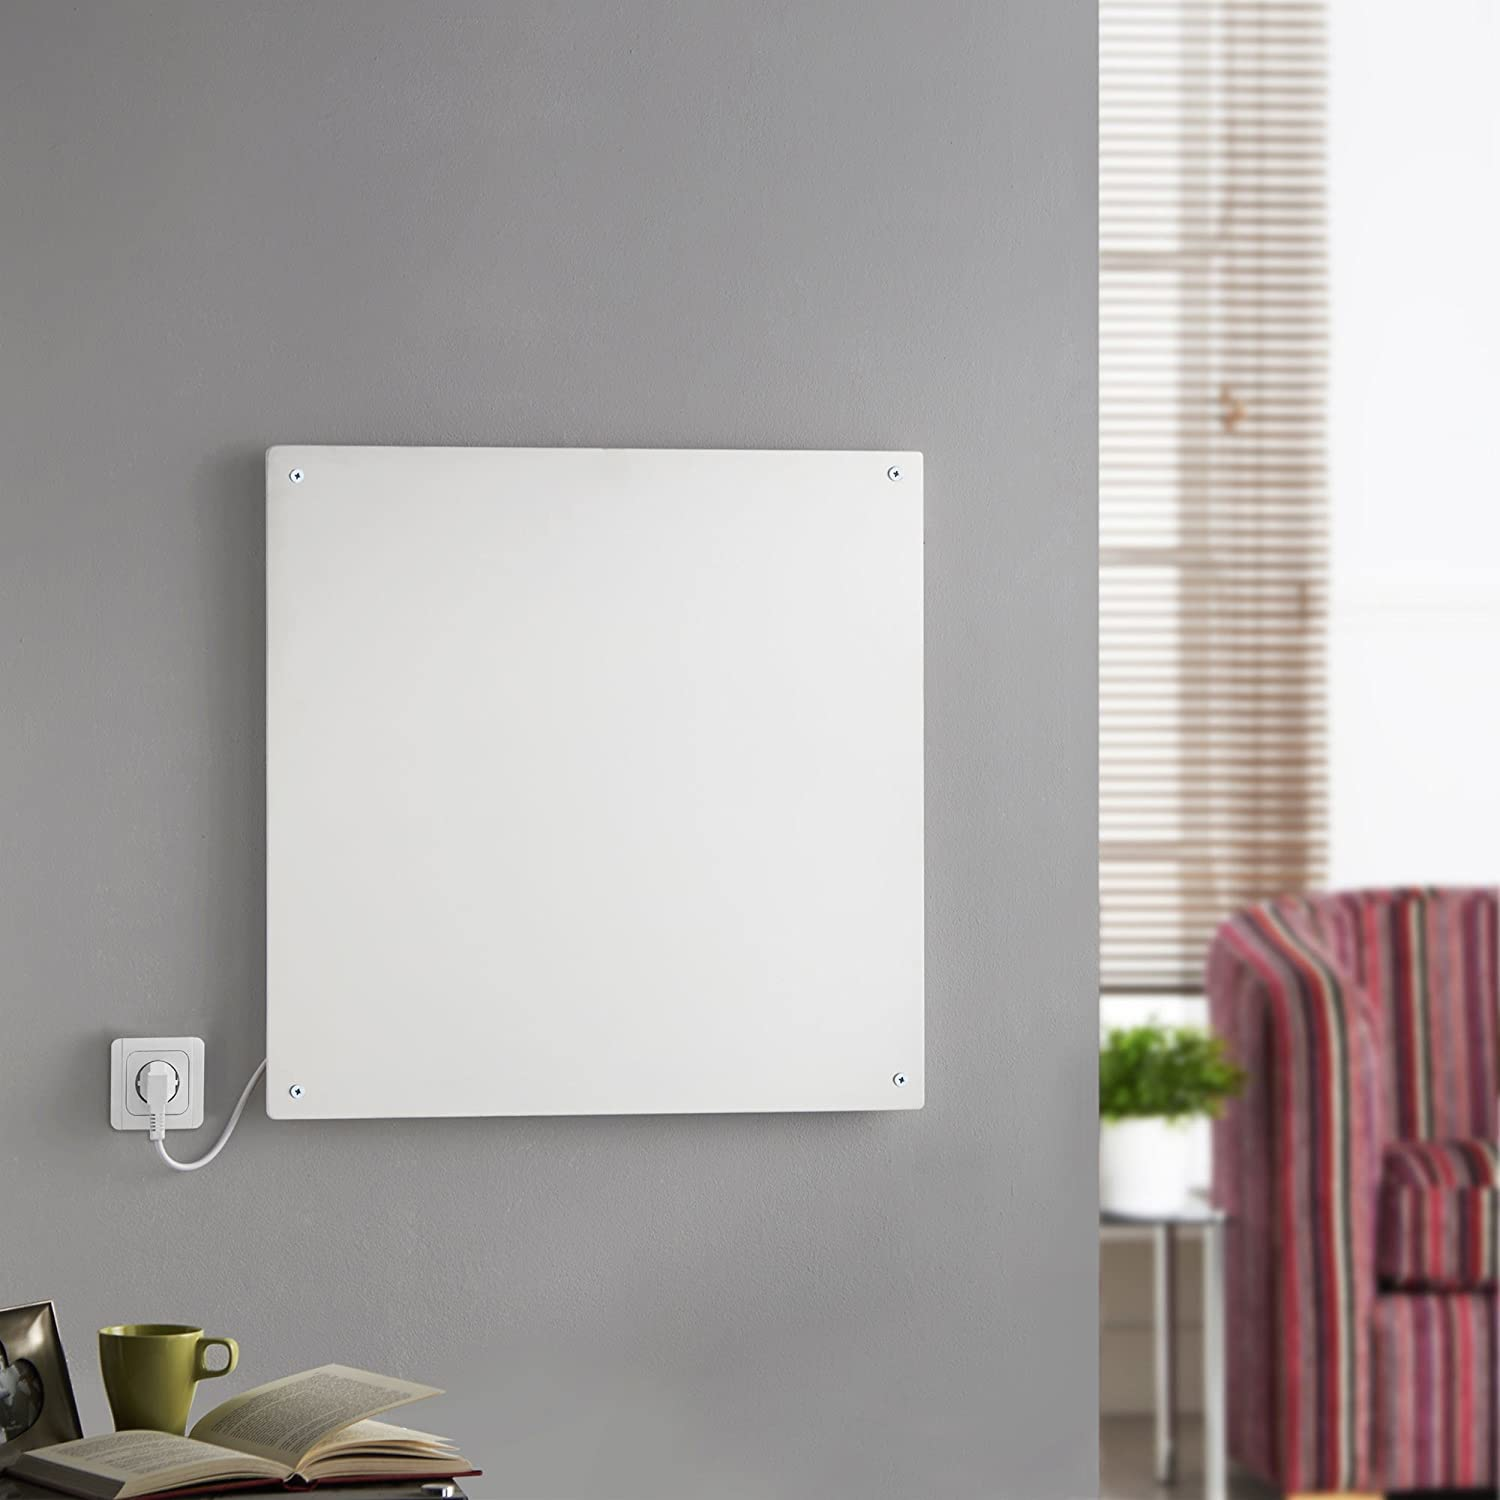 Slimline electric heaters wall mounted - Amazon Com Vonhaus 450w Wall Mounted Electric Flat Panel Heater Paintable Slimline Low Energy Eco Ceramic Space Heater 23 5 X 23 5 X 0 4 Kitchen